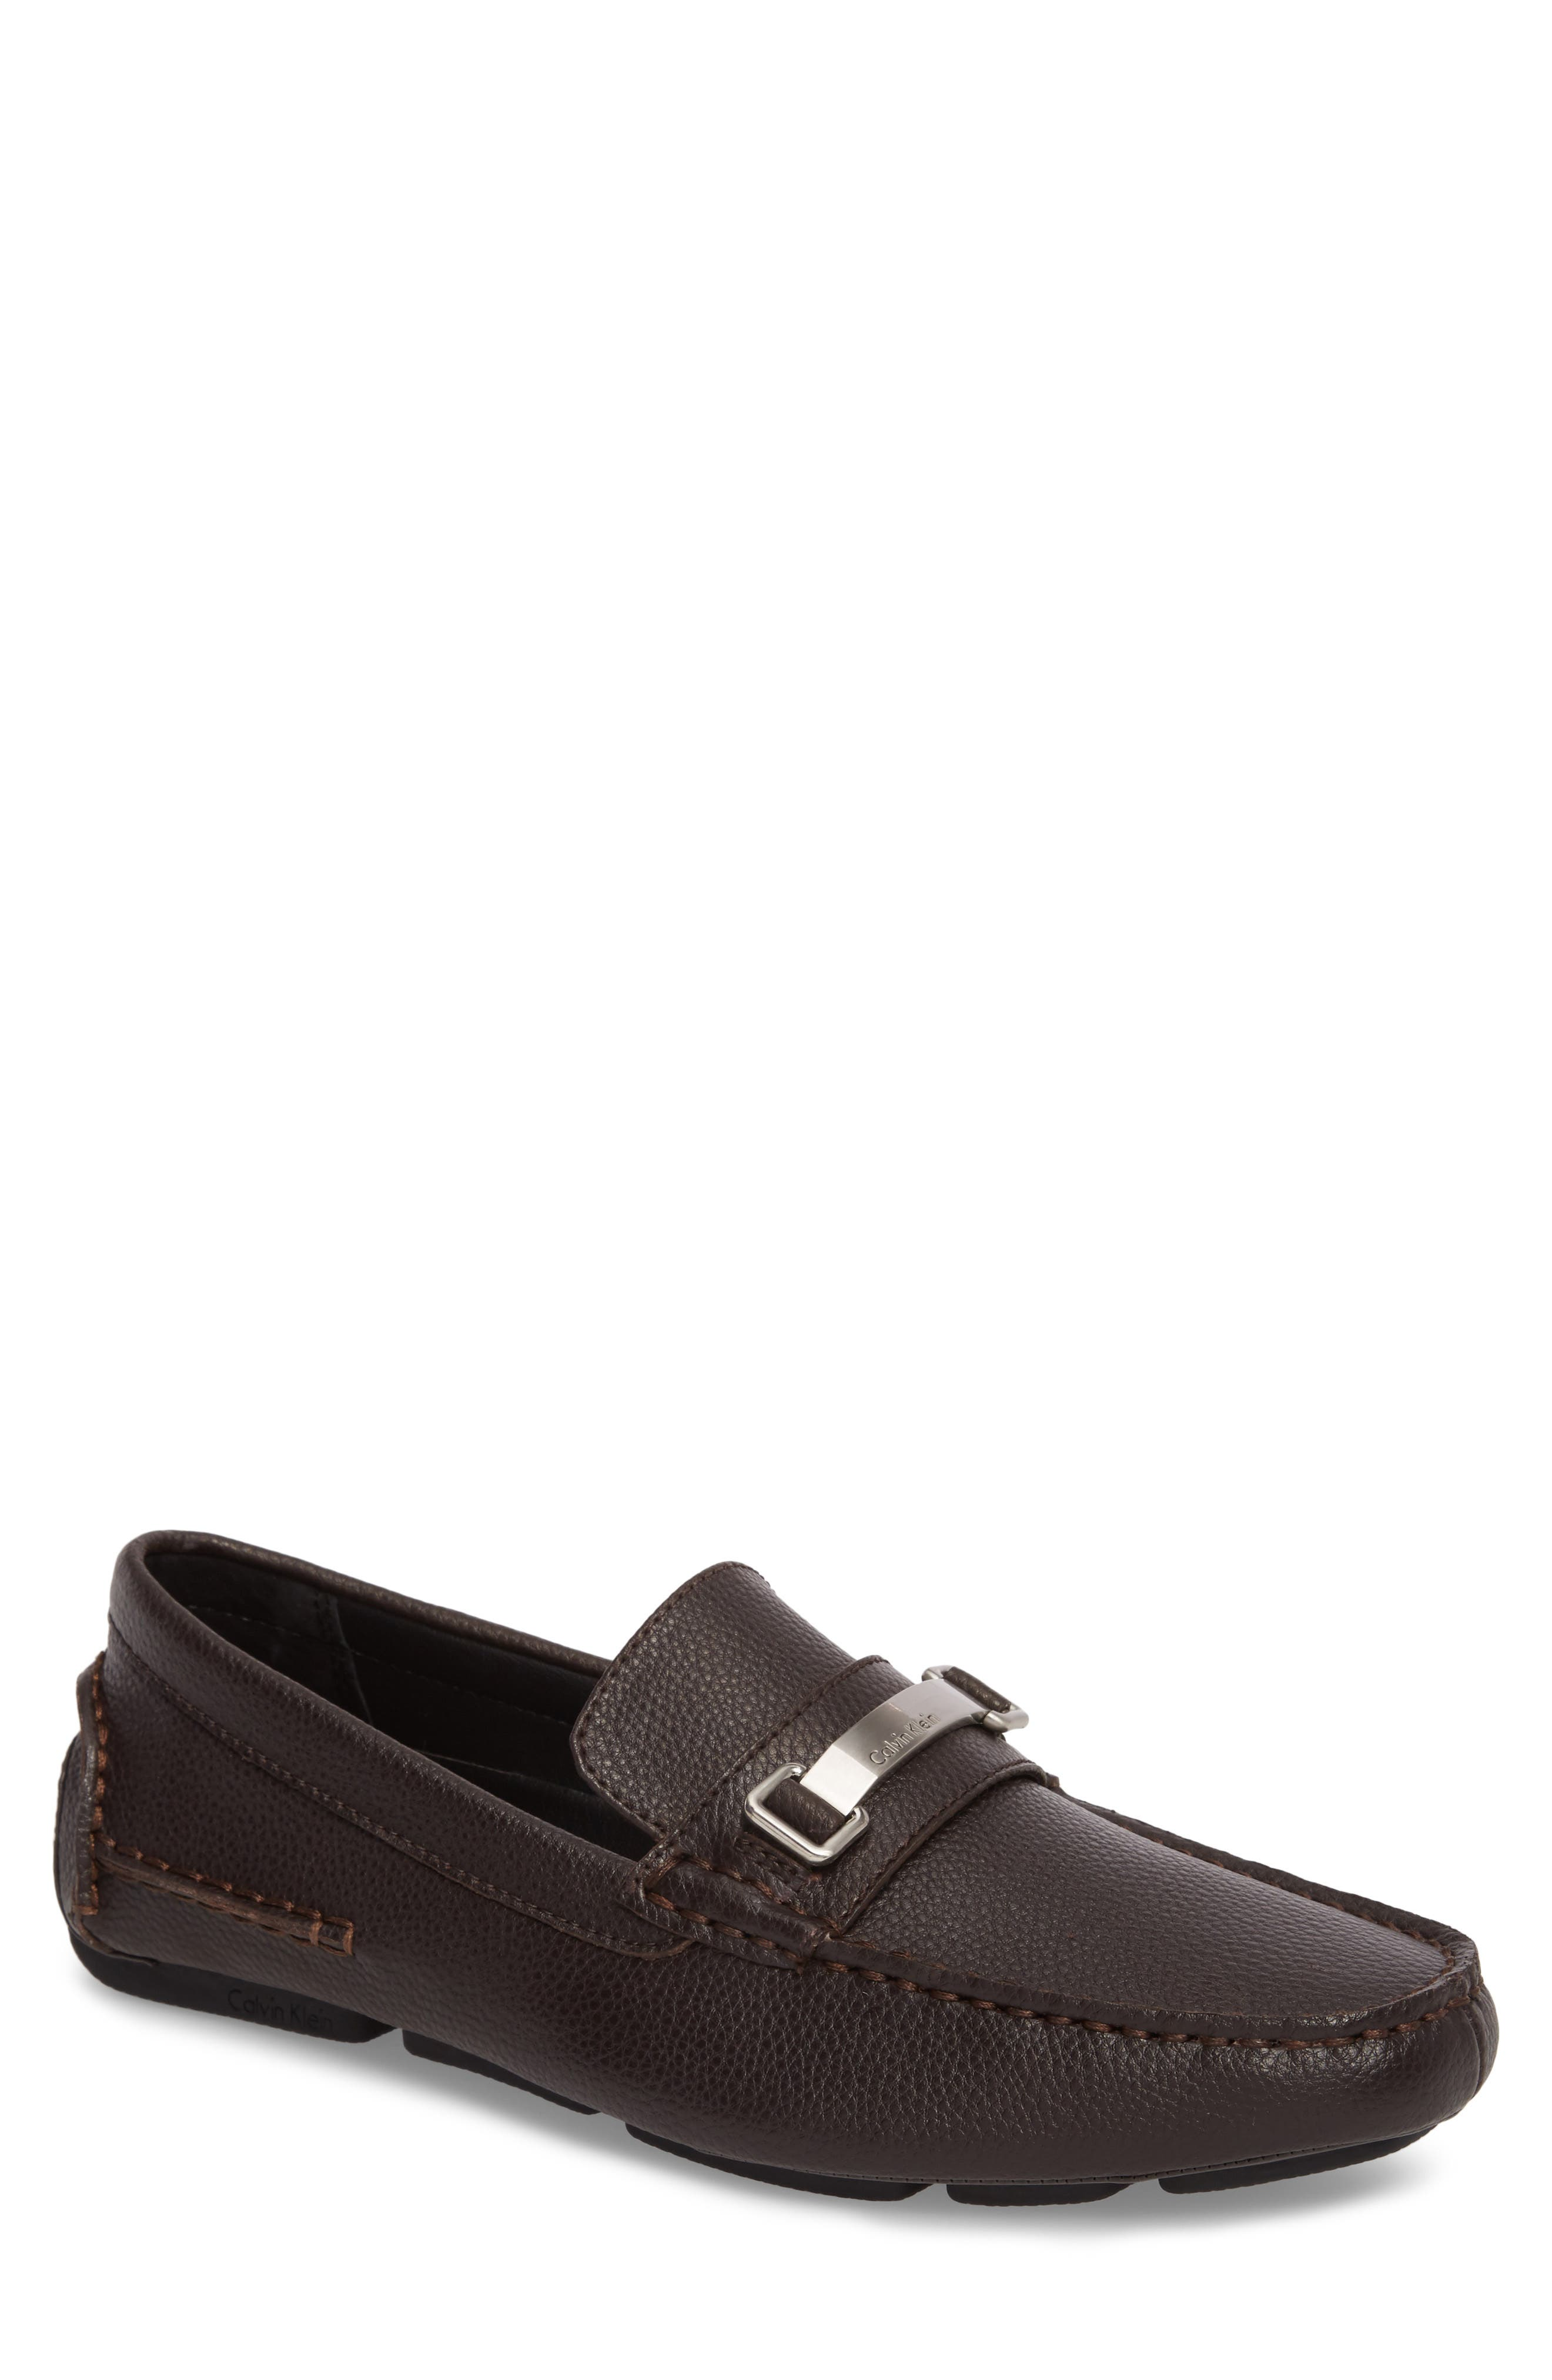 Mikos Driving Shoe,                         Main,                         color, Dark Brown Leather